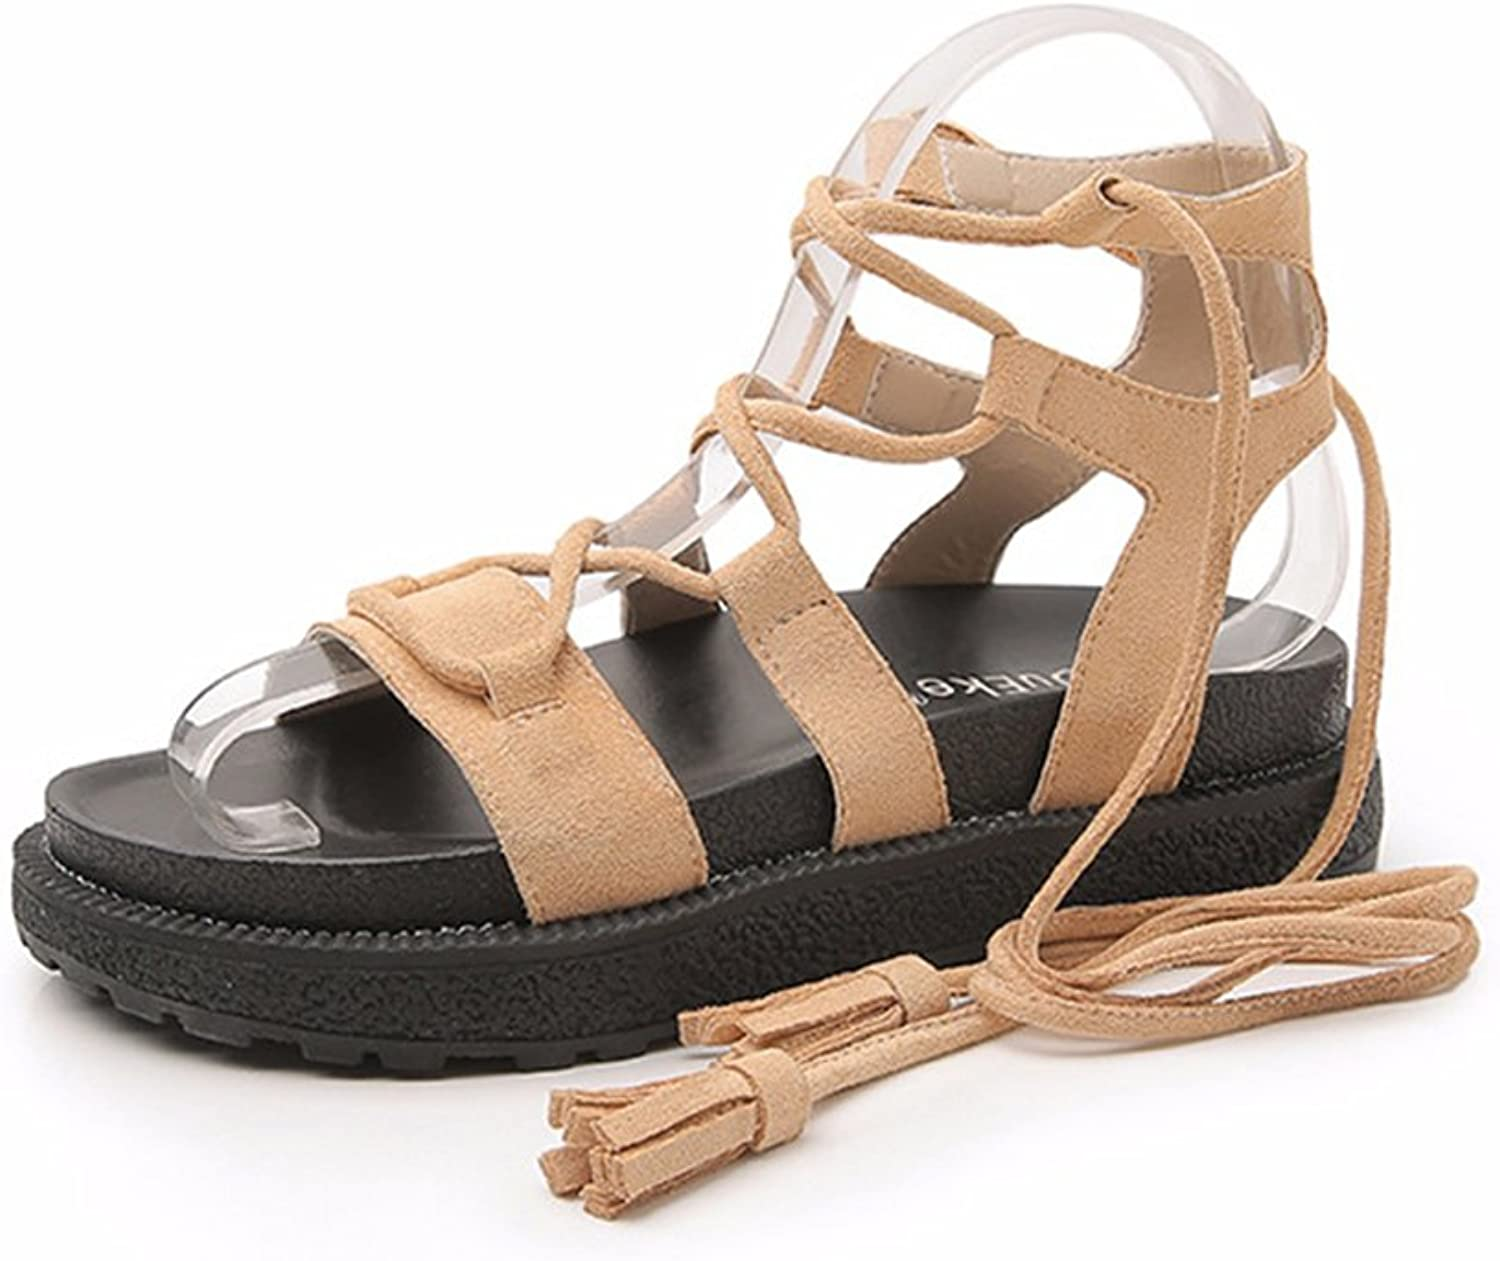 Tuoup Women's Skidproof Stylish Leather Sandals Sandles